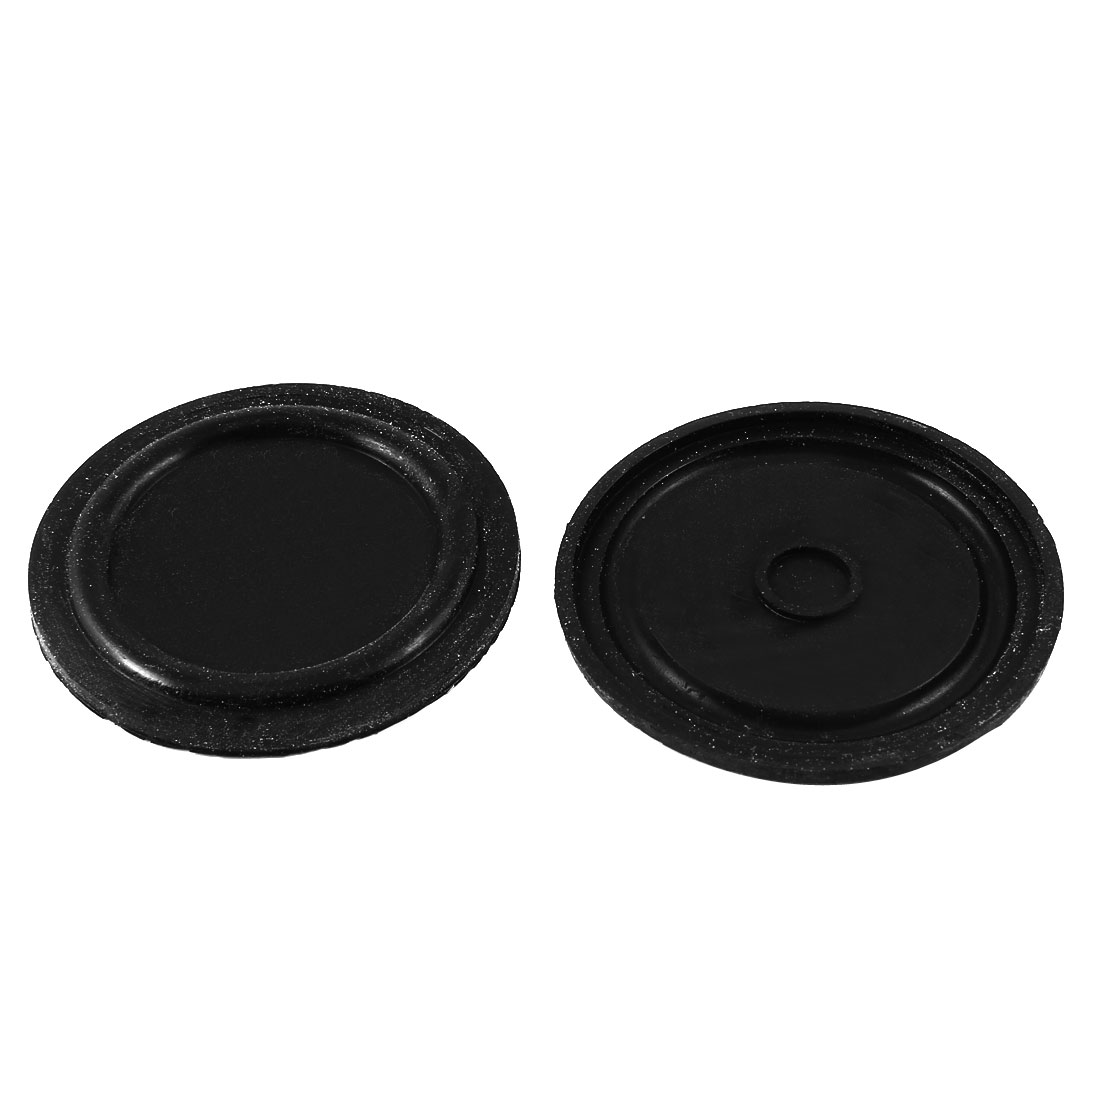 "2 Pcs 60mm 2.4"" Dia Water Heater Diaphragms Sealing Gasket Black"